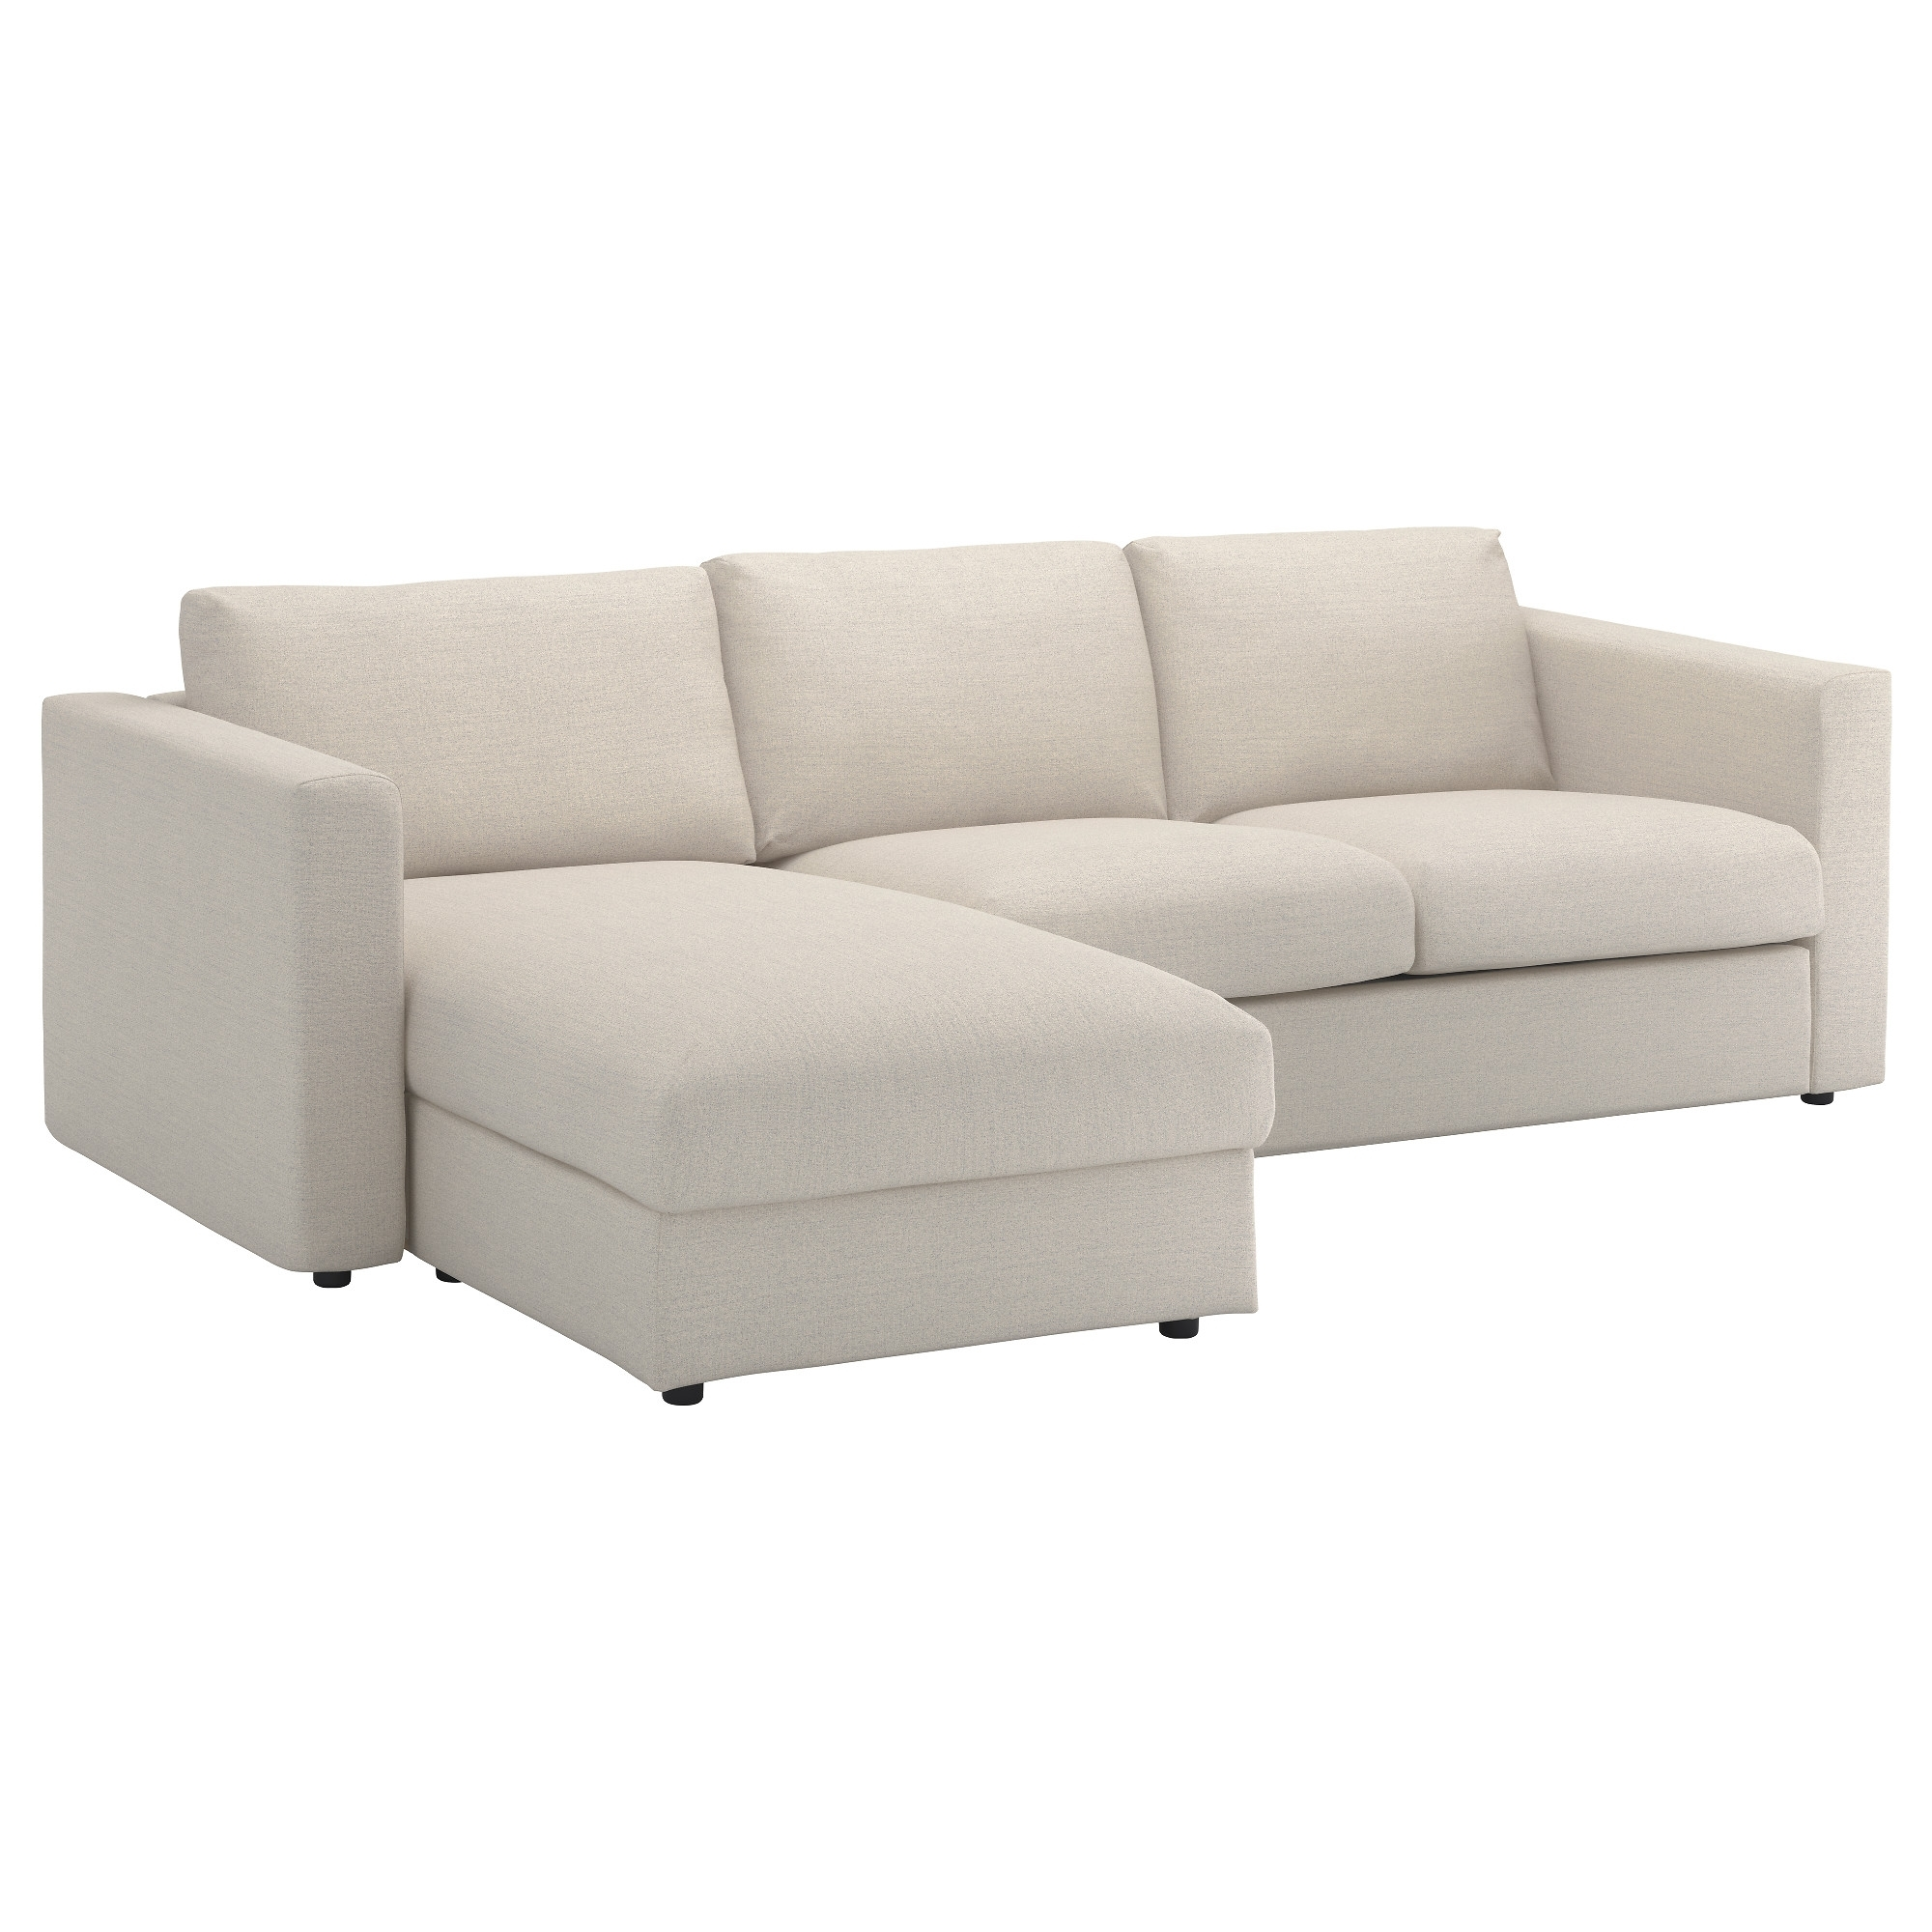 Current Ikea Chaise Couches Inside Vimle Sofa – With Chaise/gunnared Beige – Ikea (View 4 of 15)